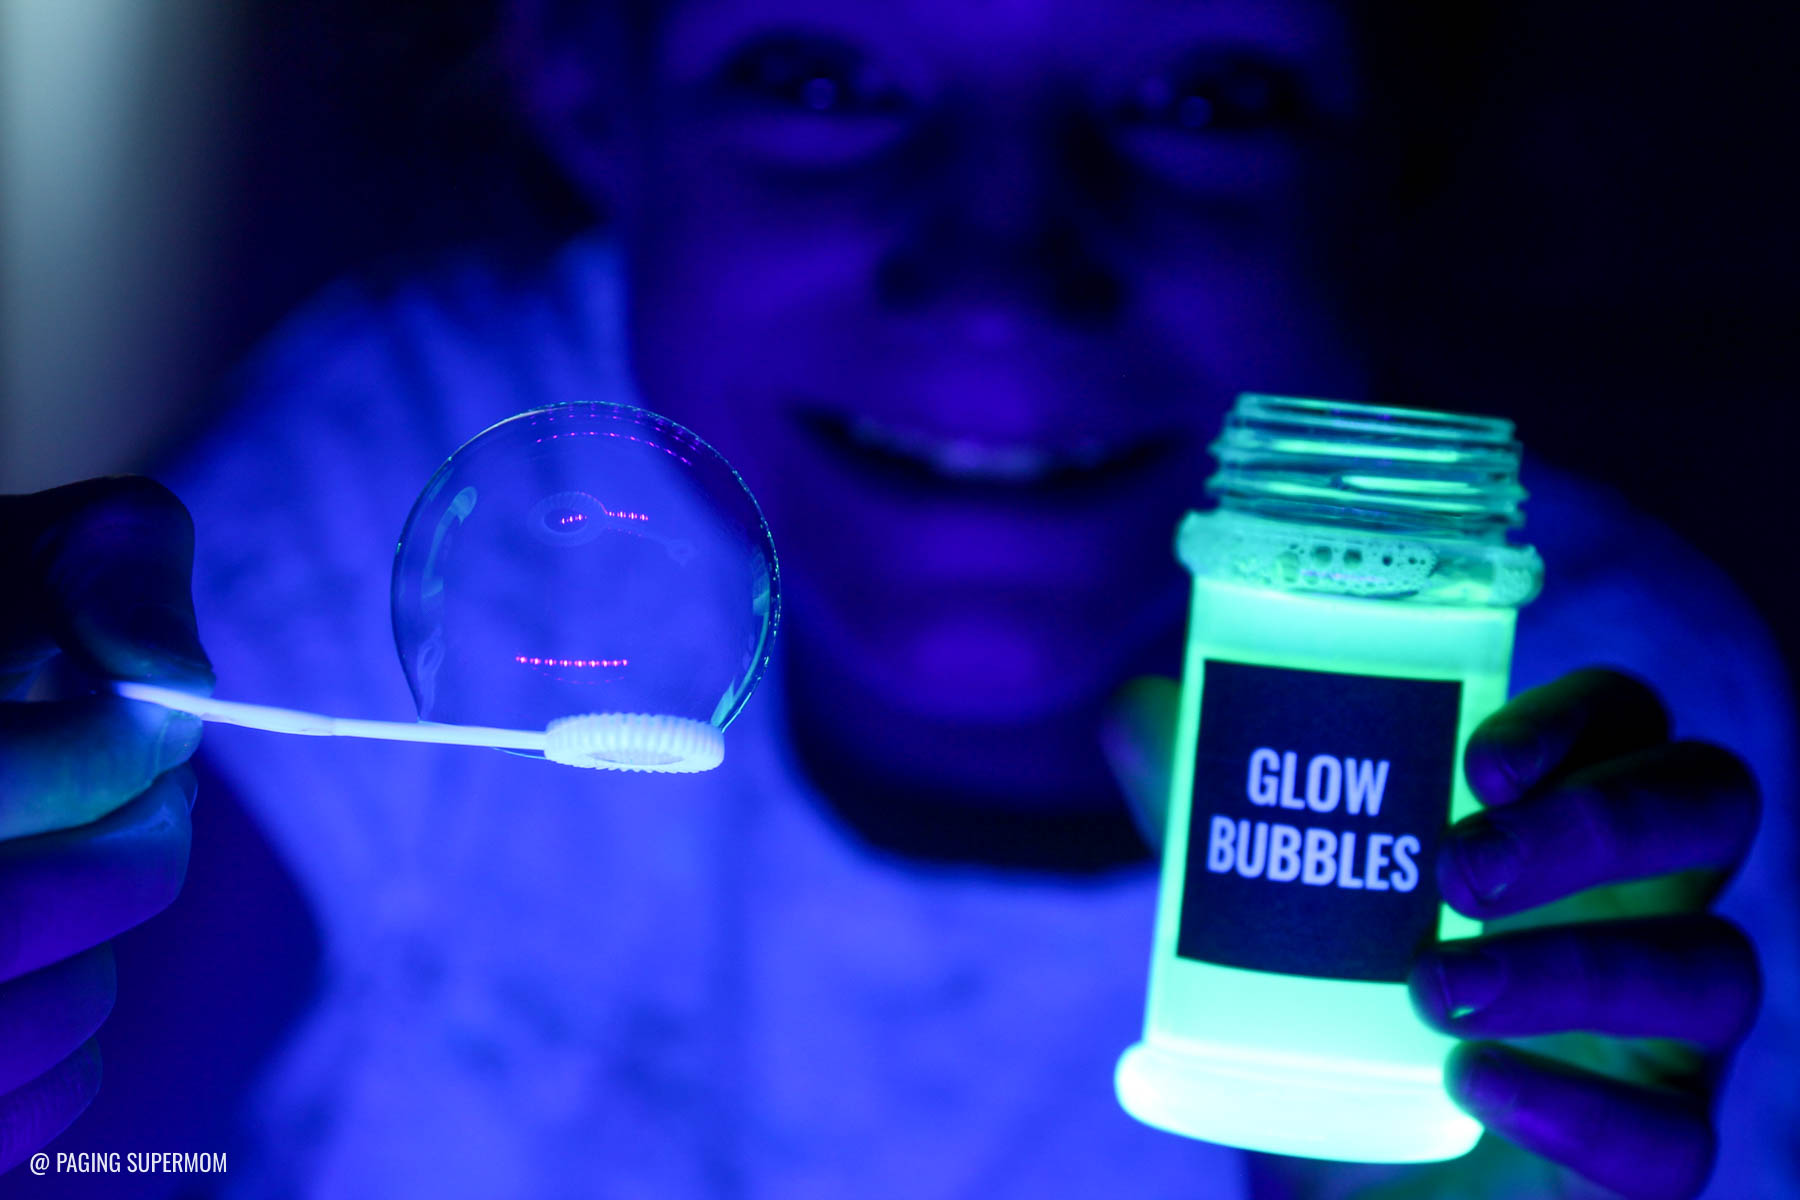 Make DIY Glow Bubbles for a Moana Tomatoa Party - Blacklight Shiny Party based on the Realm of Monsters in Moana movie via @PagingSupermom